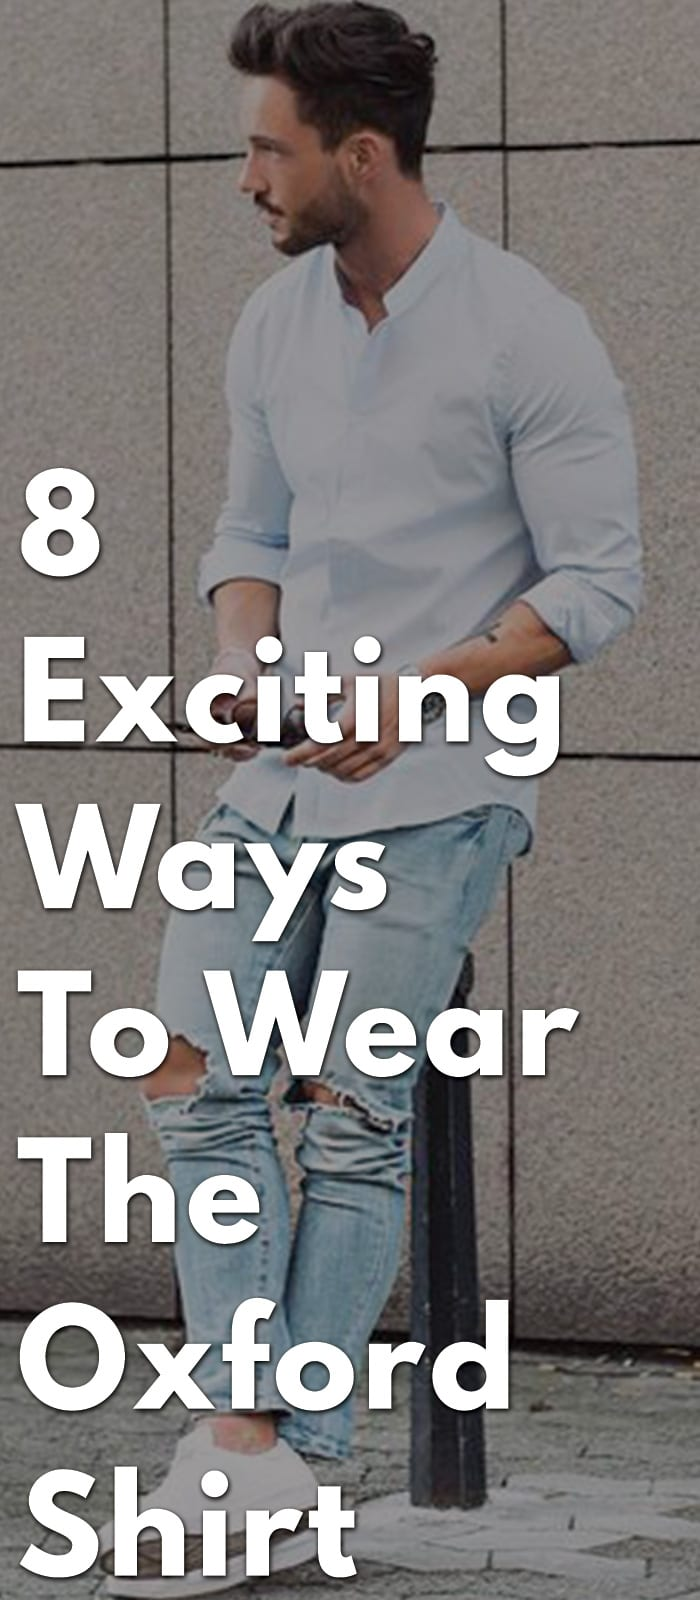 8-Exciting-Ways-To-Wear-The-Oxford-Shirt